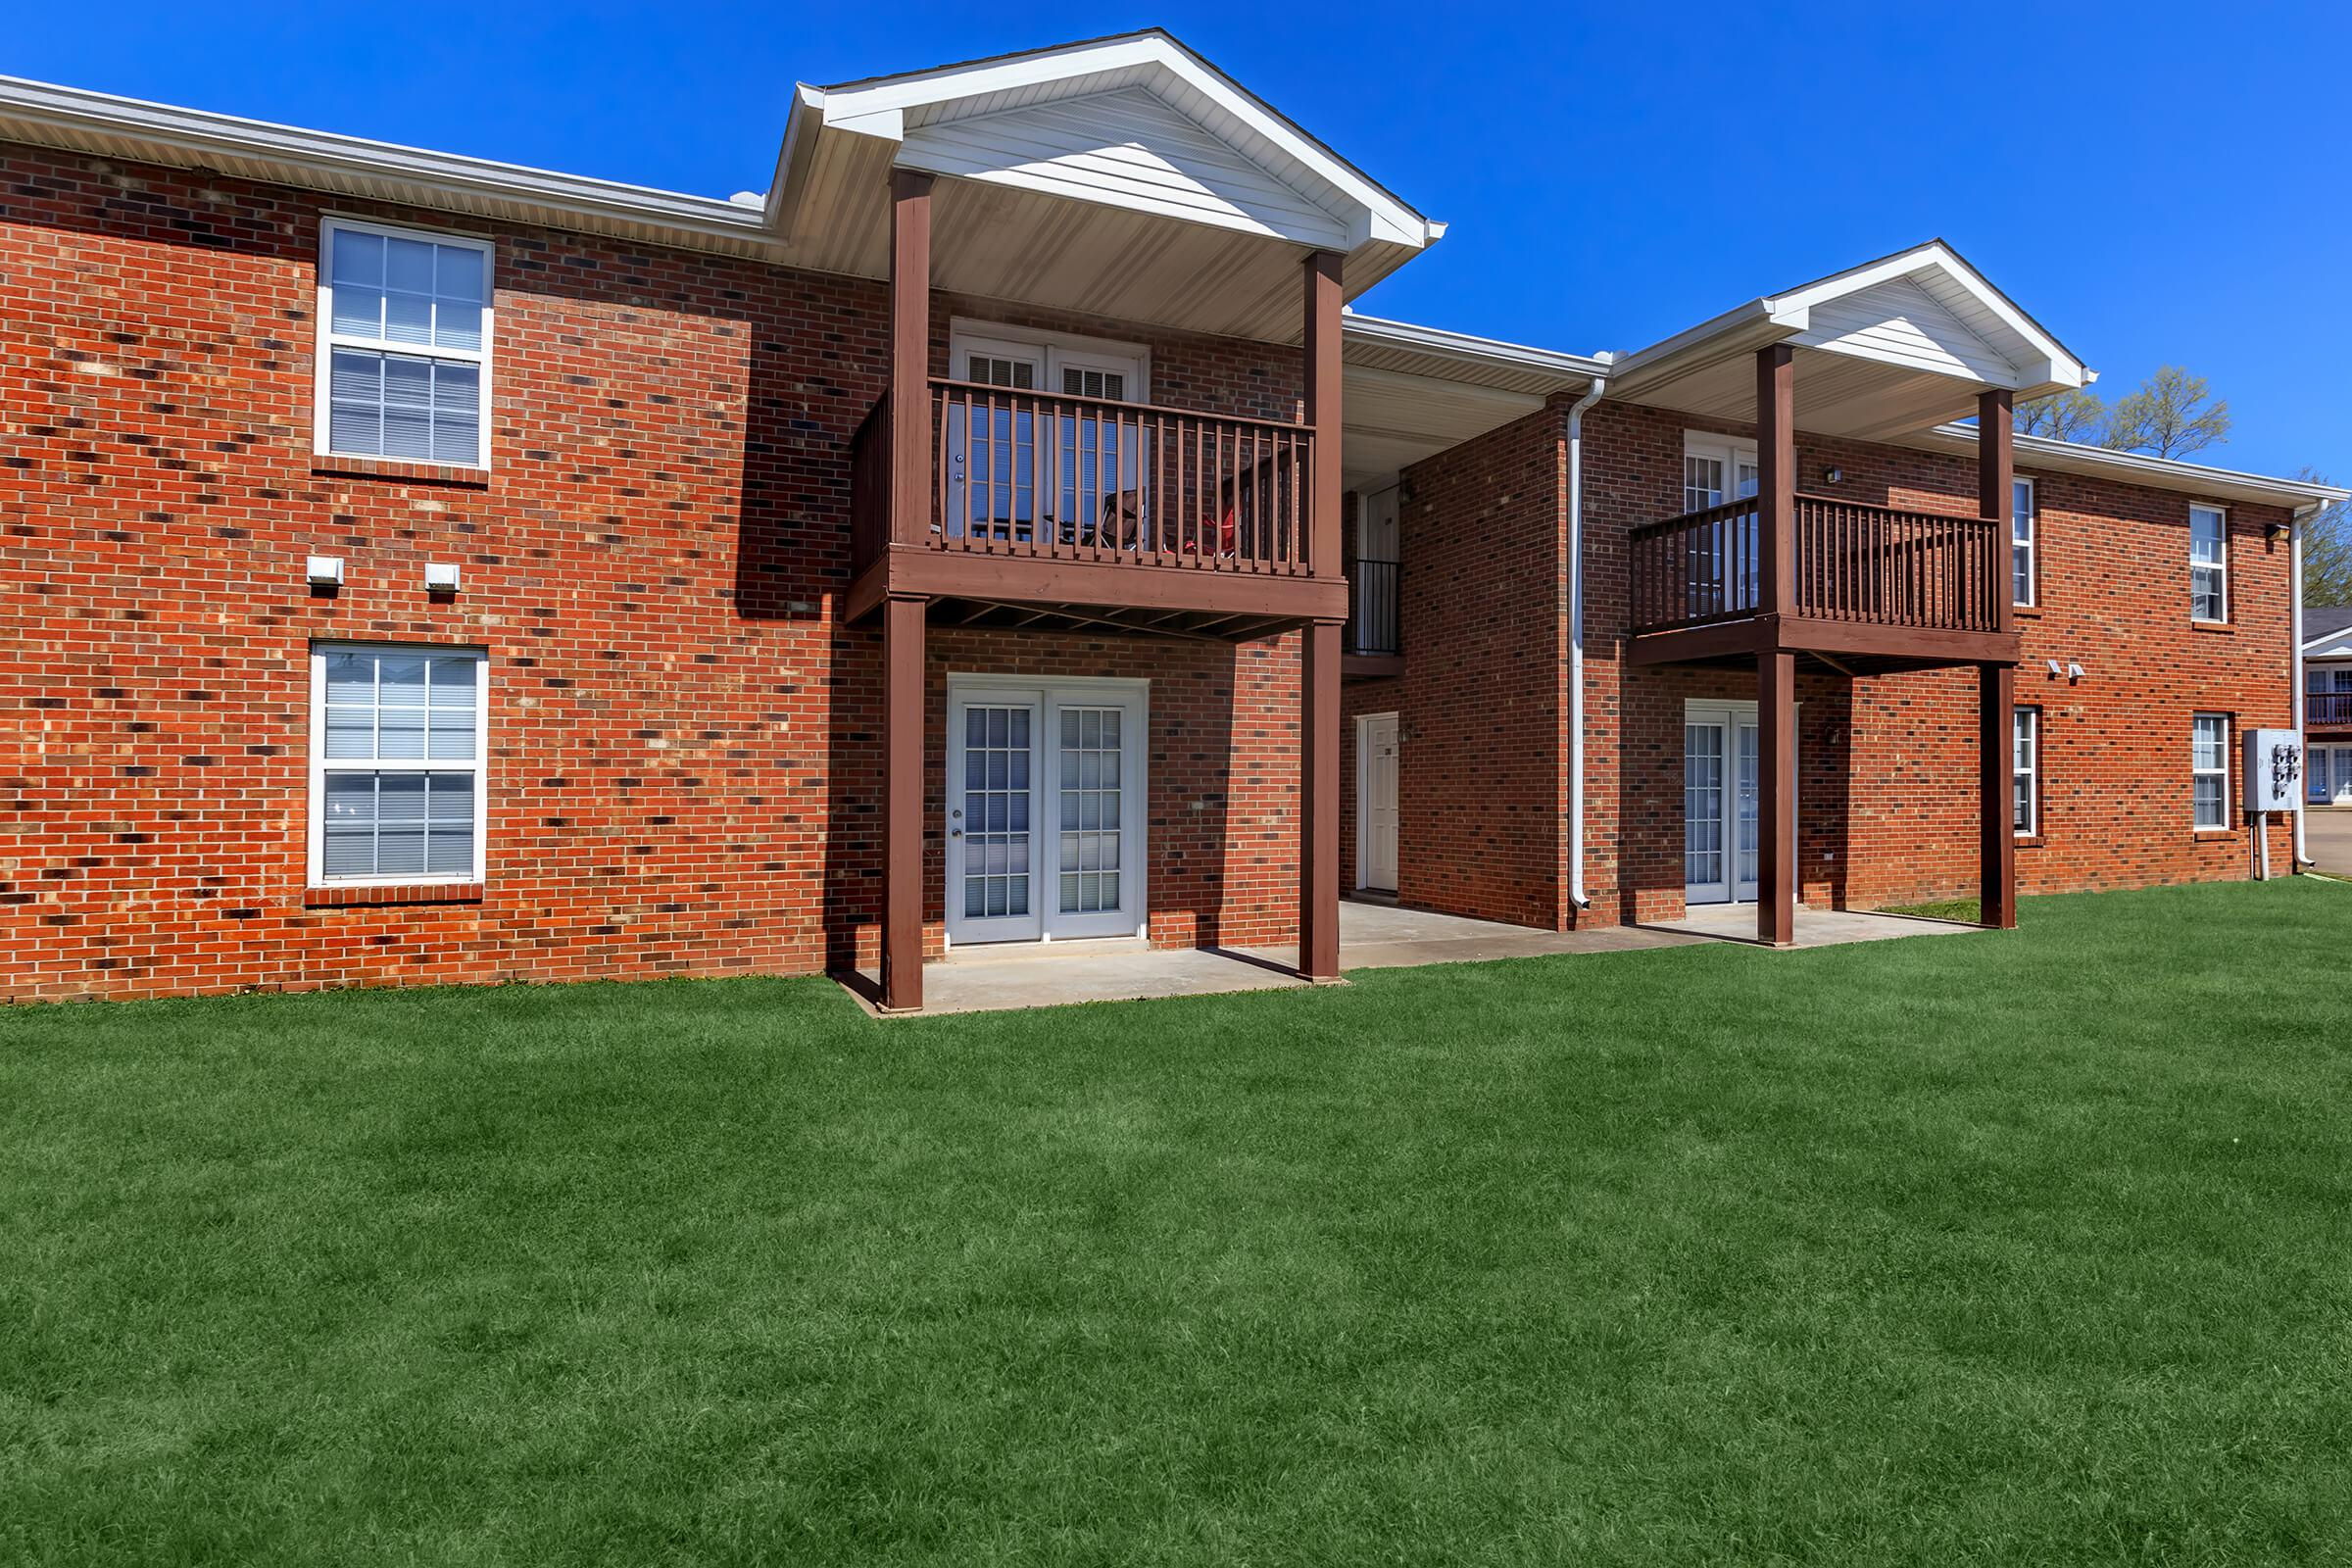 Charming apartments in Clarksville Tennessee